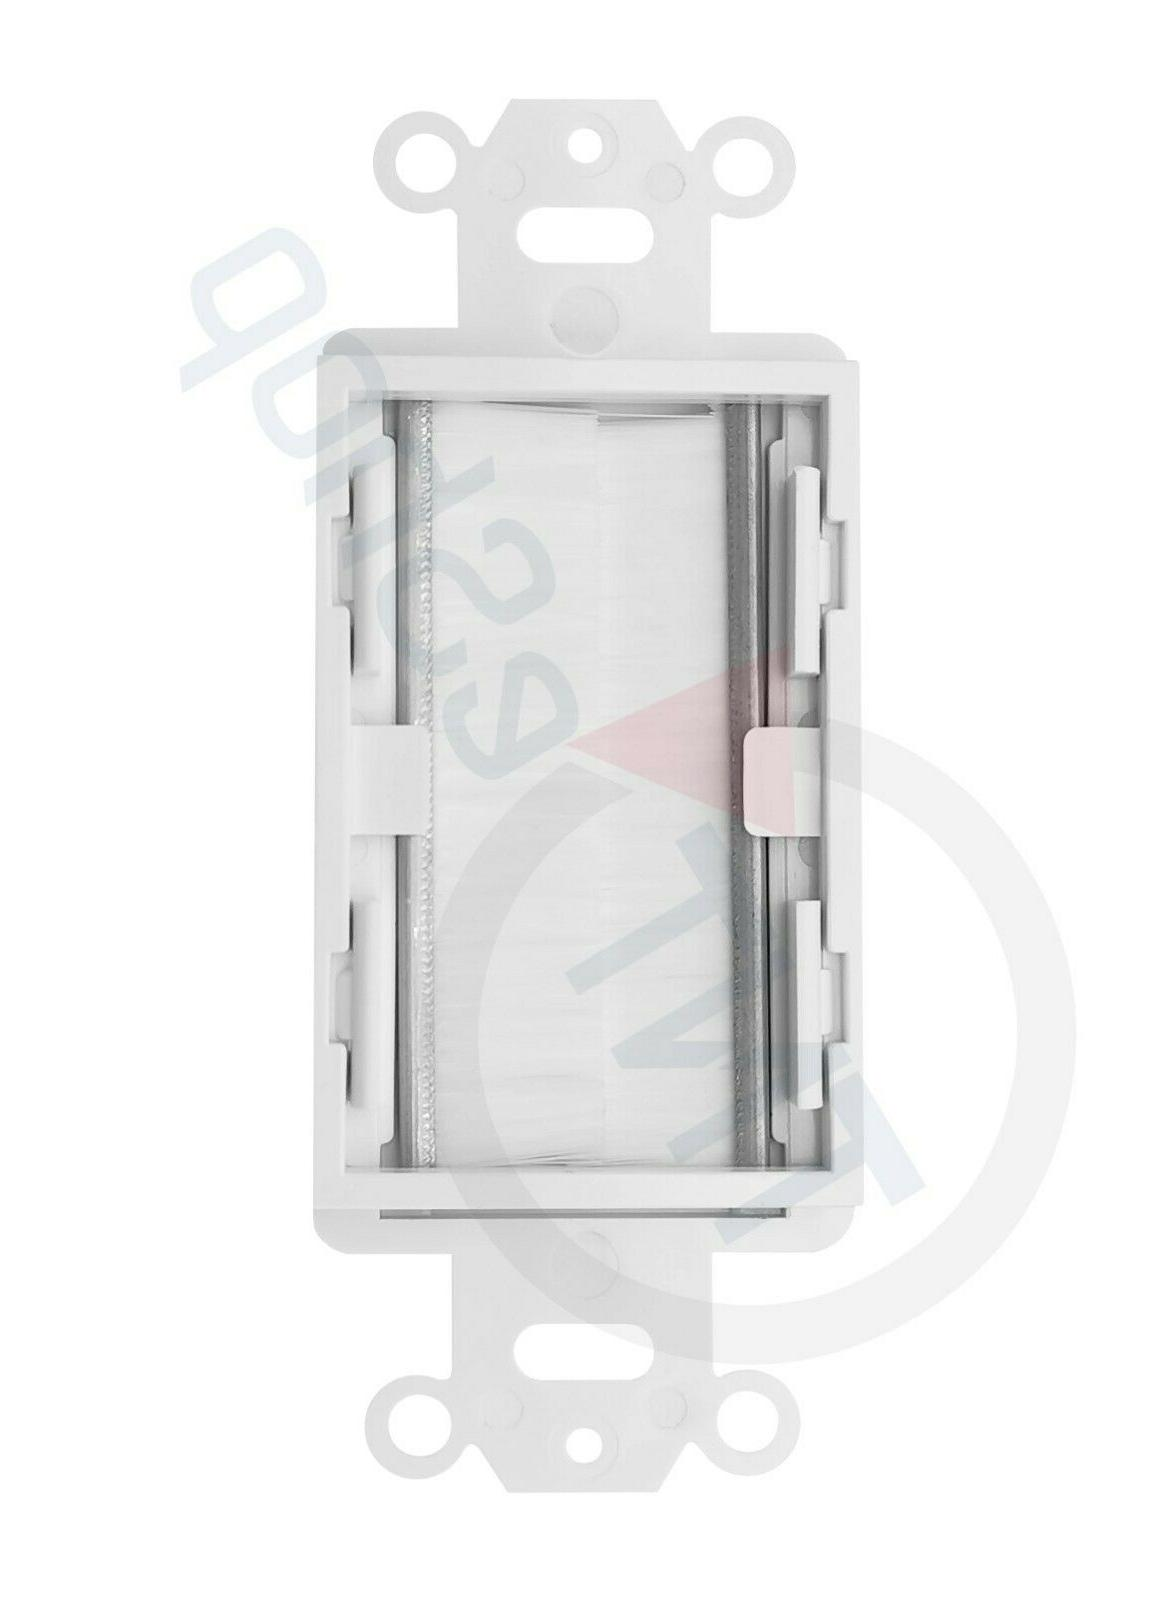 TNT Wall Plate - White 10 Pack